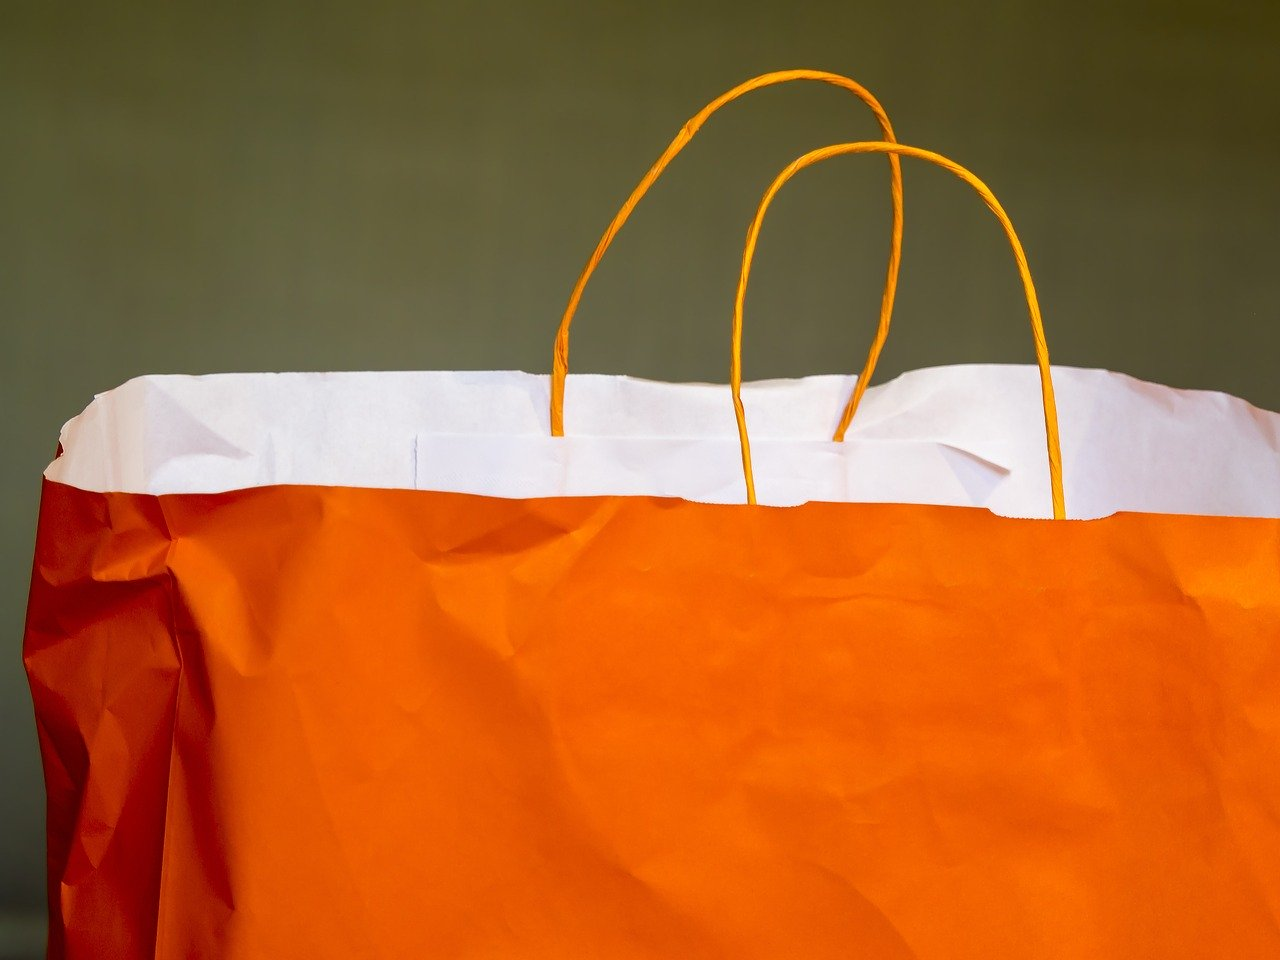 4 situations where a custom paper bag could make a great impression